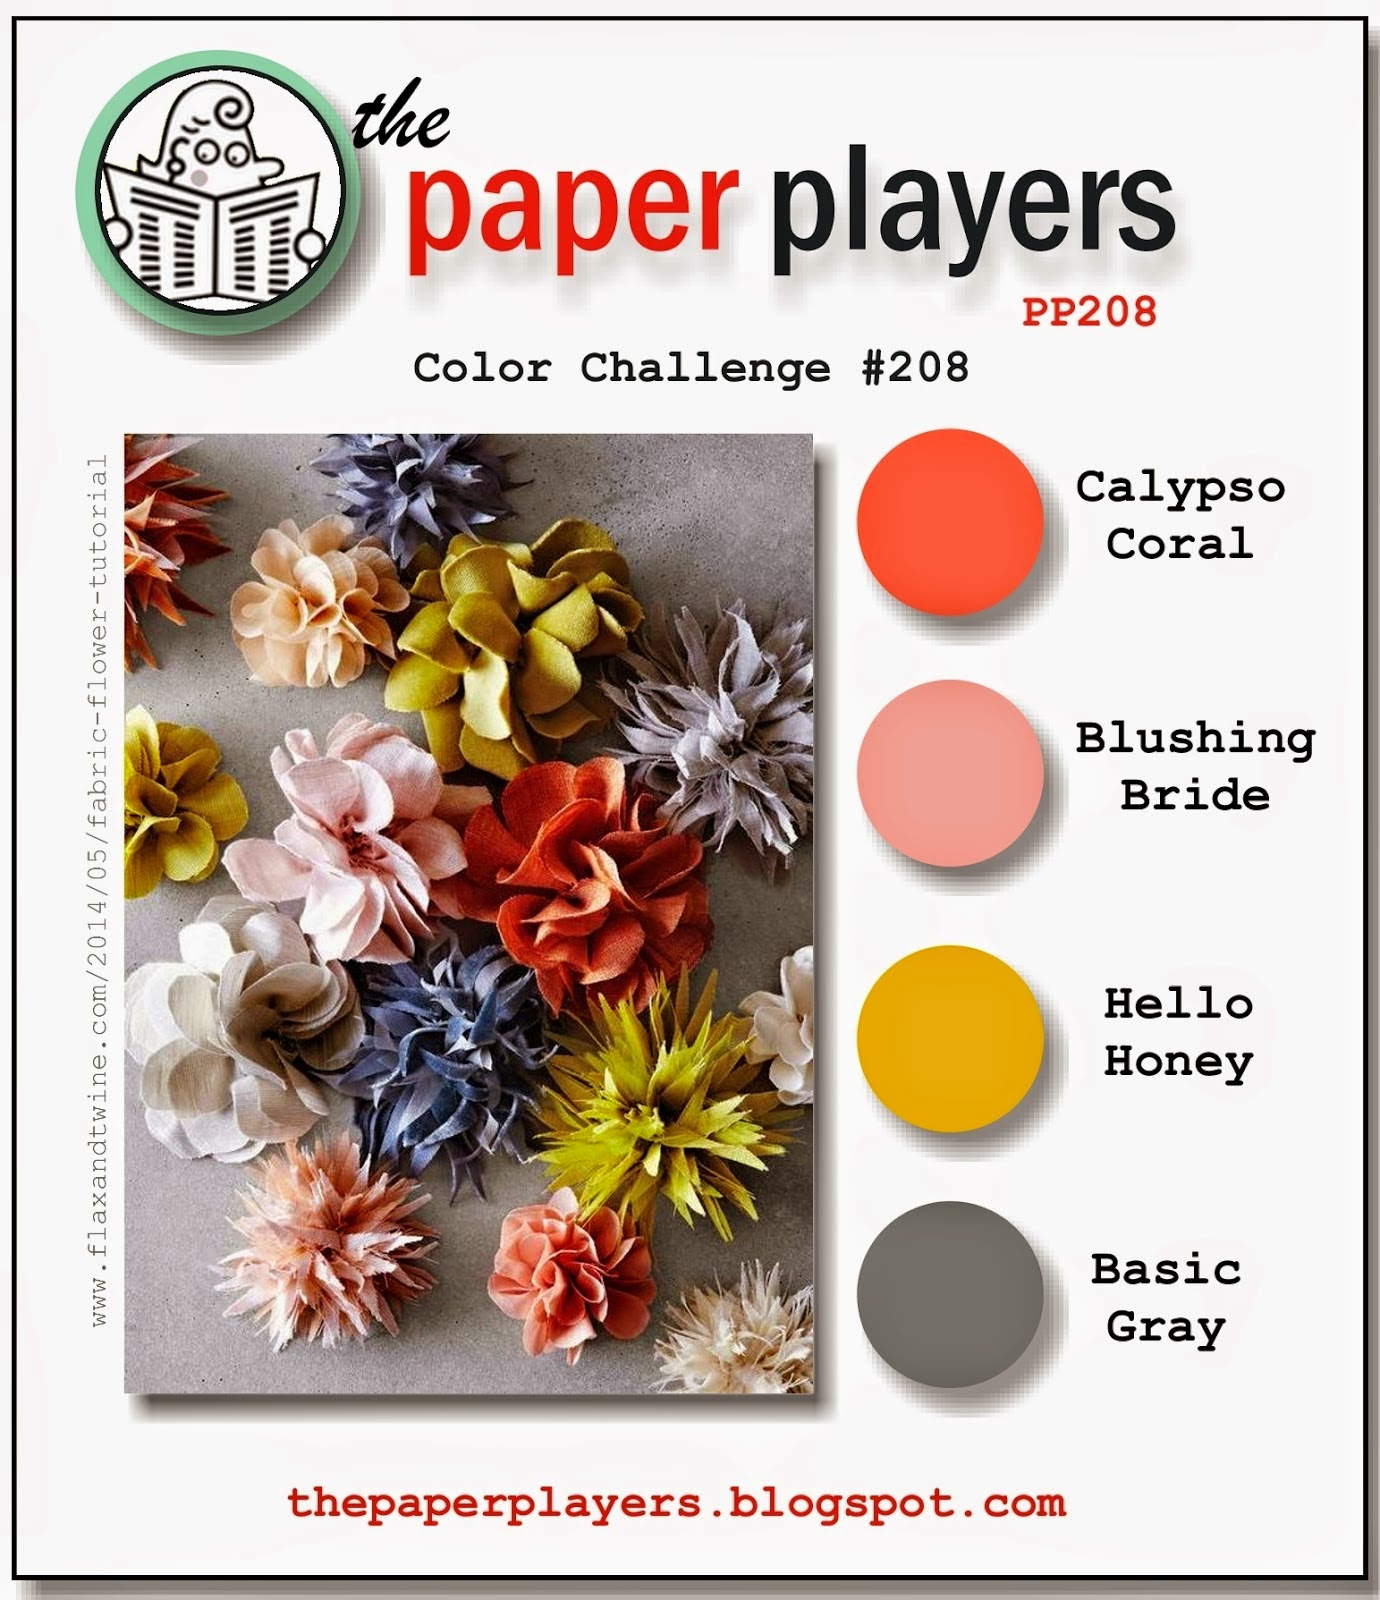 http://thepaperplayers.blogspot.ca/2014/08/paper-players-challenge-208-color.html